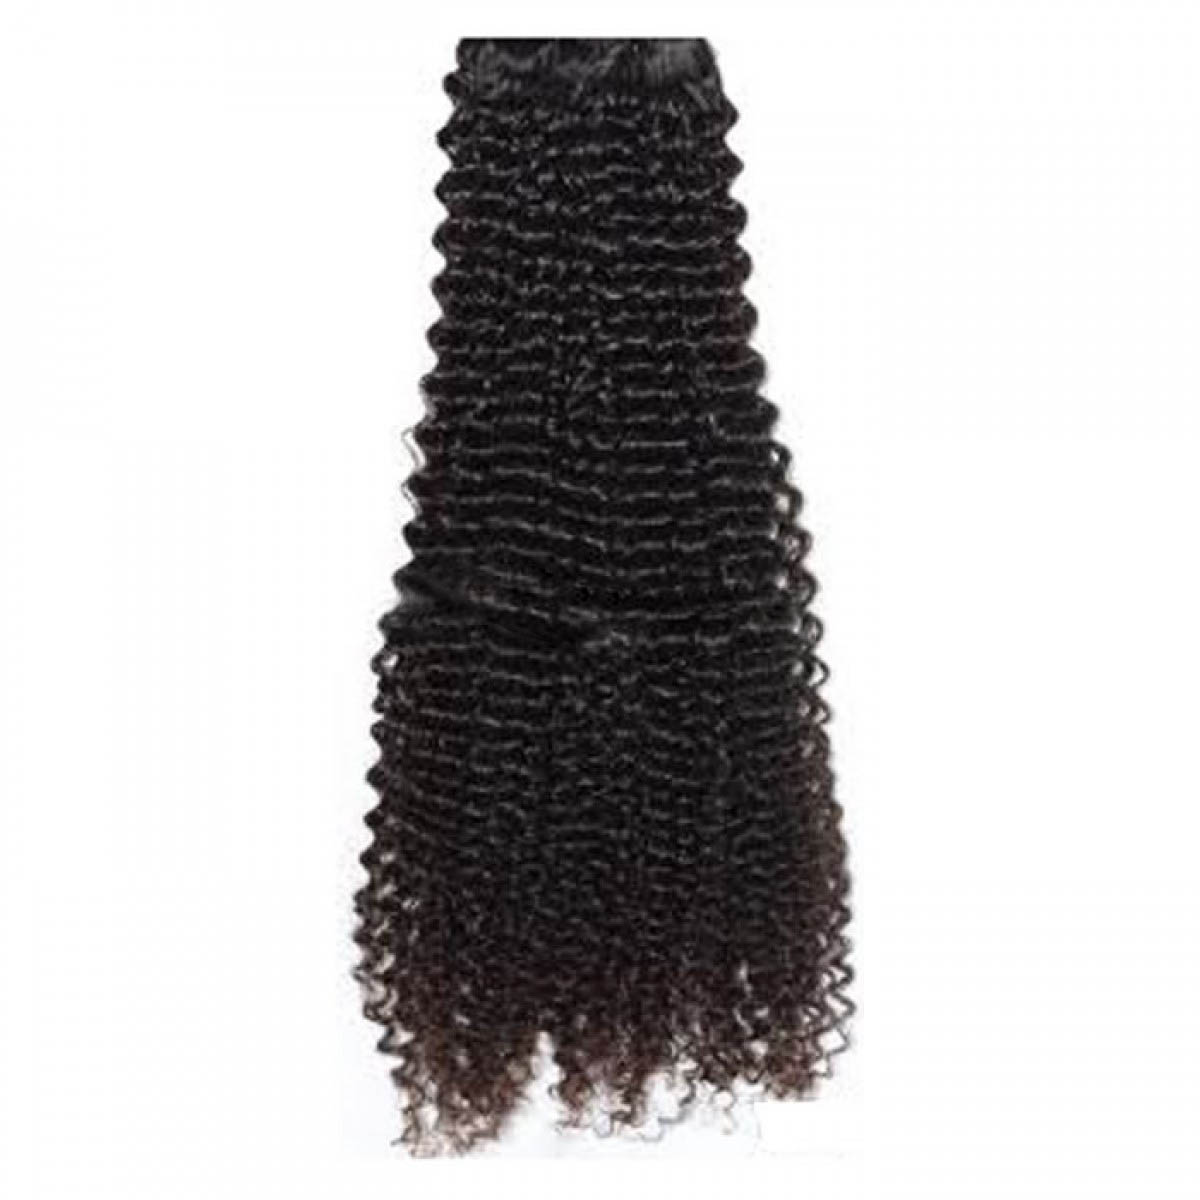 14 Inch #1b Natural Black Afro Curl Indian Remy Hair Wefts no 1